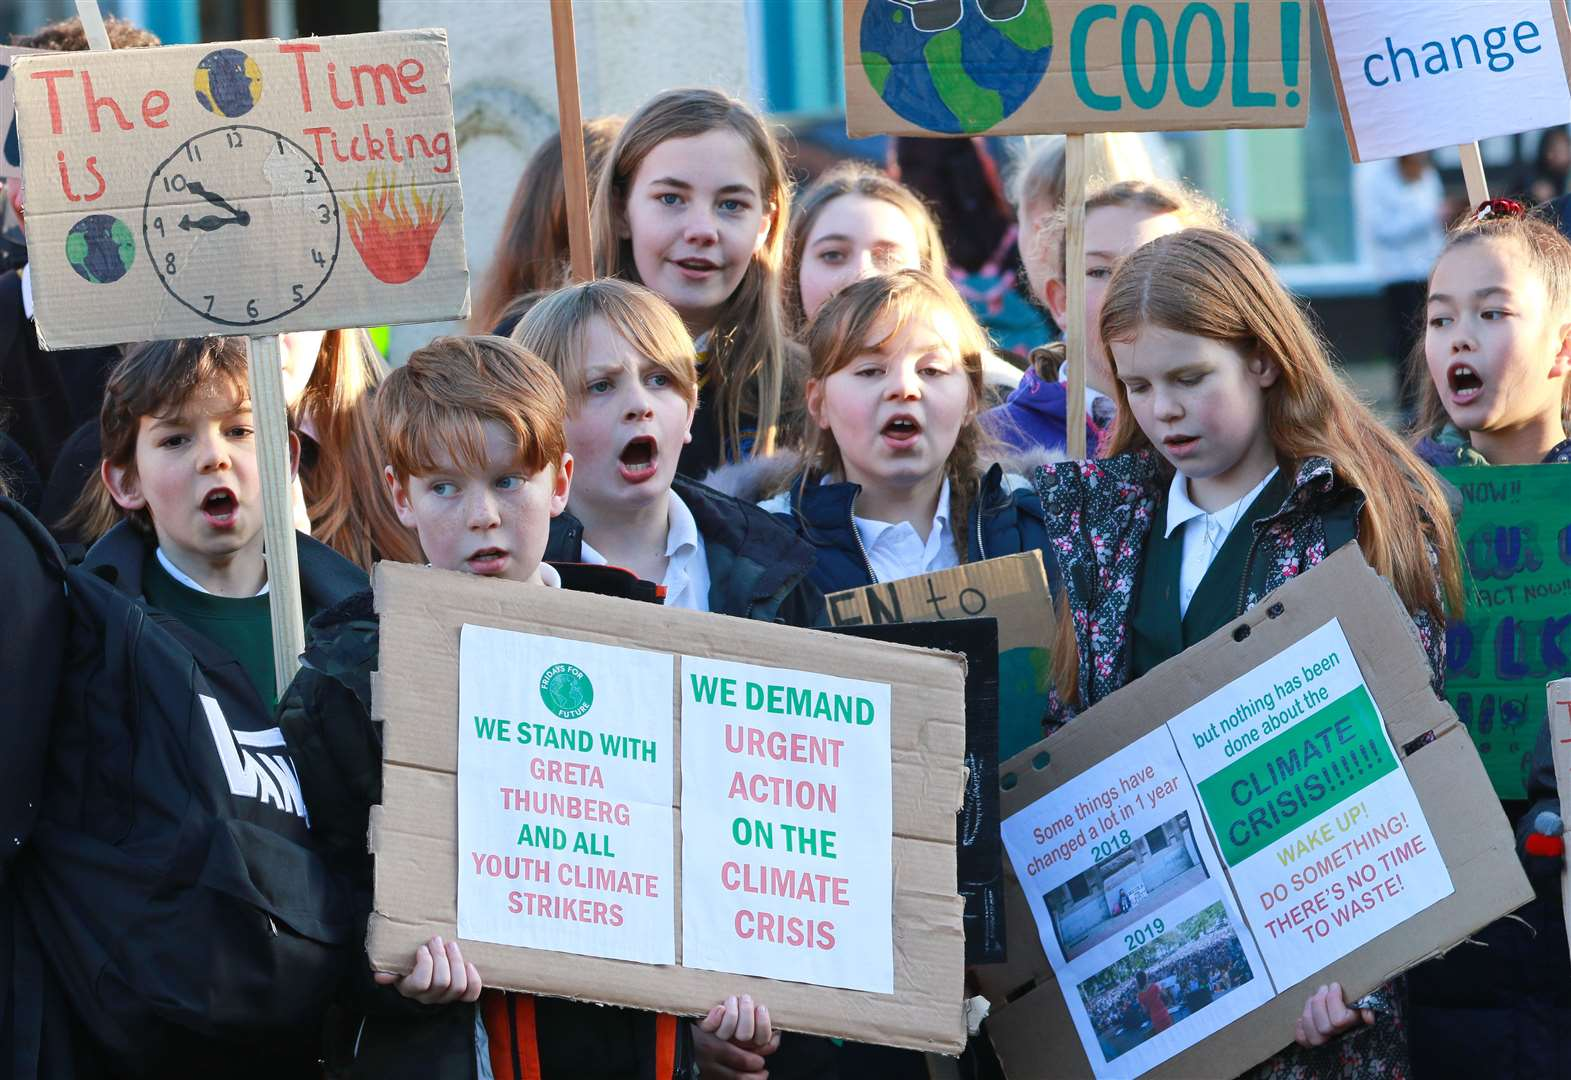 VIDEO: Children call on leaders to take action on climate crisis